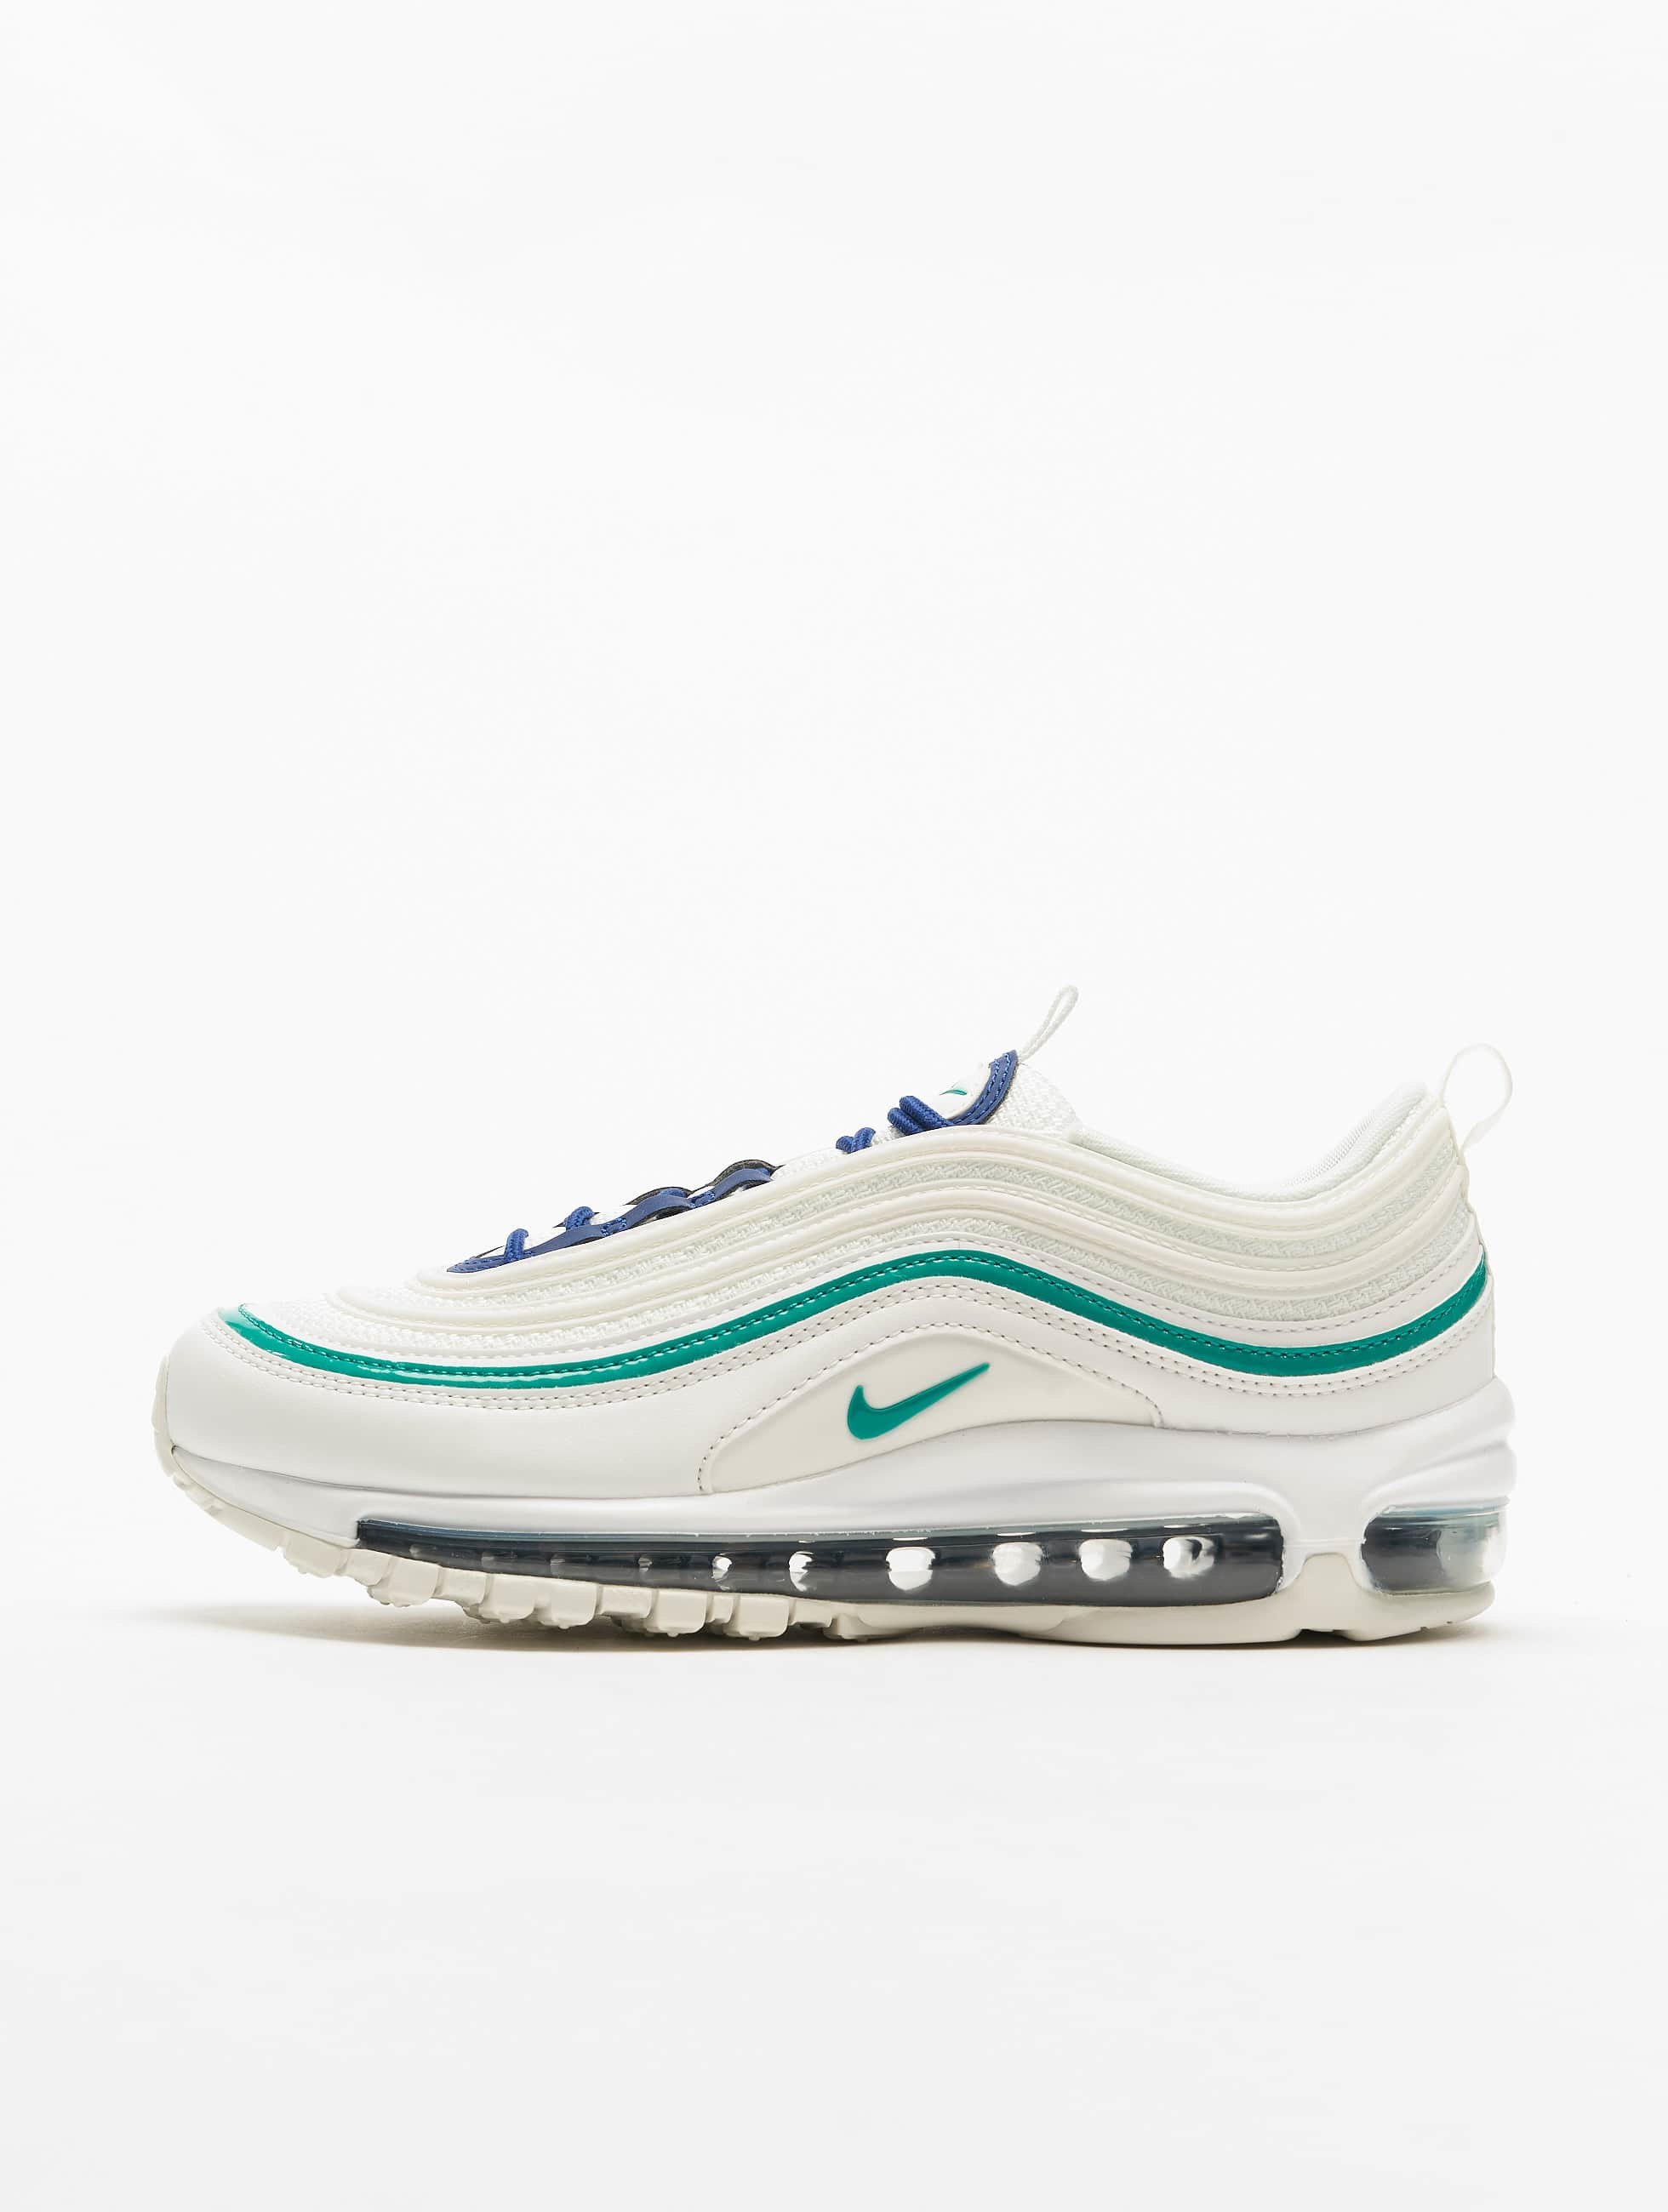 air max homme 97 blanche